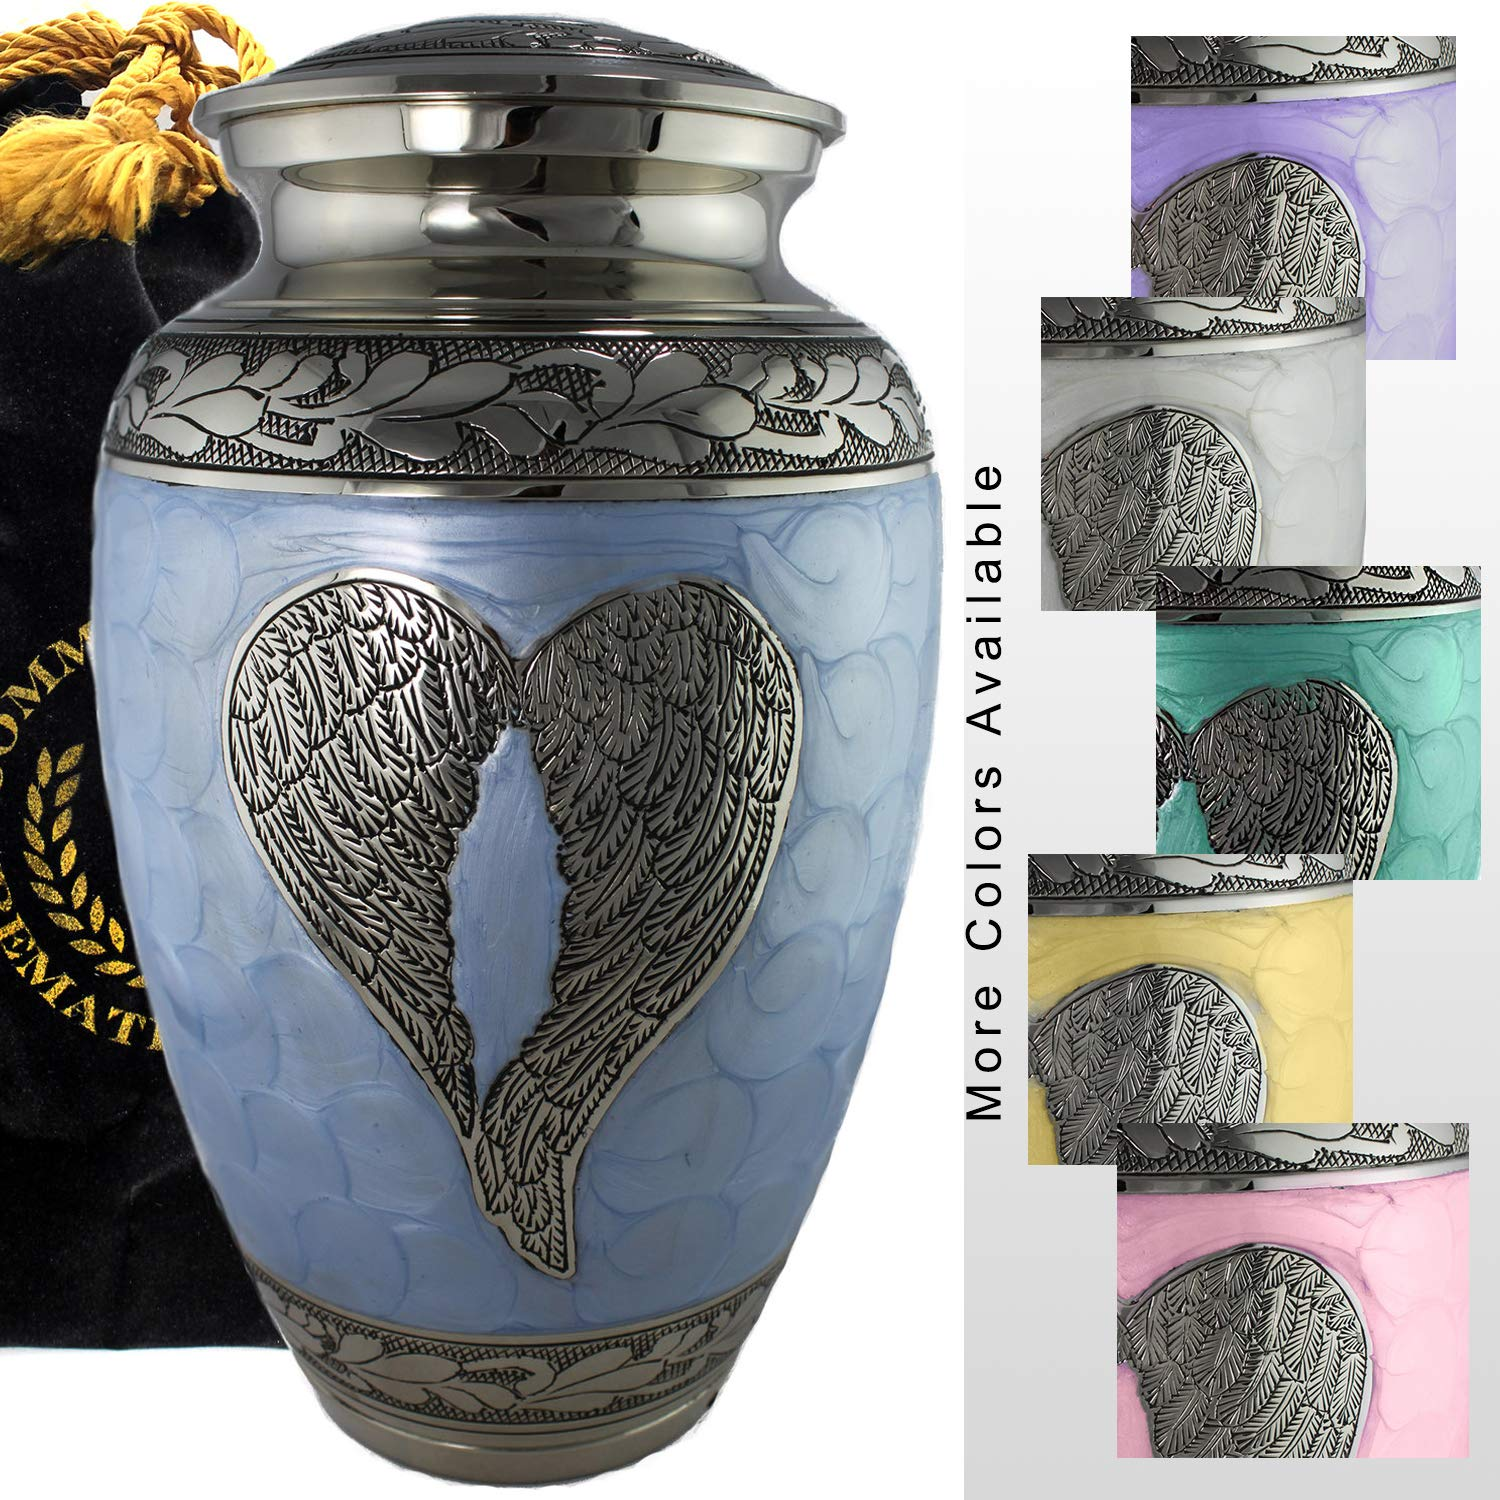 Mint Loving Angel Wings - Funeral, Burial, Niche or Columbarium Cremation Urn for Human Ashes - 100% Brass - Mint Keepsake Set of 4 Esca di Luce Imports